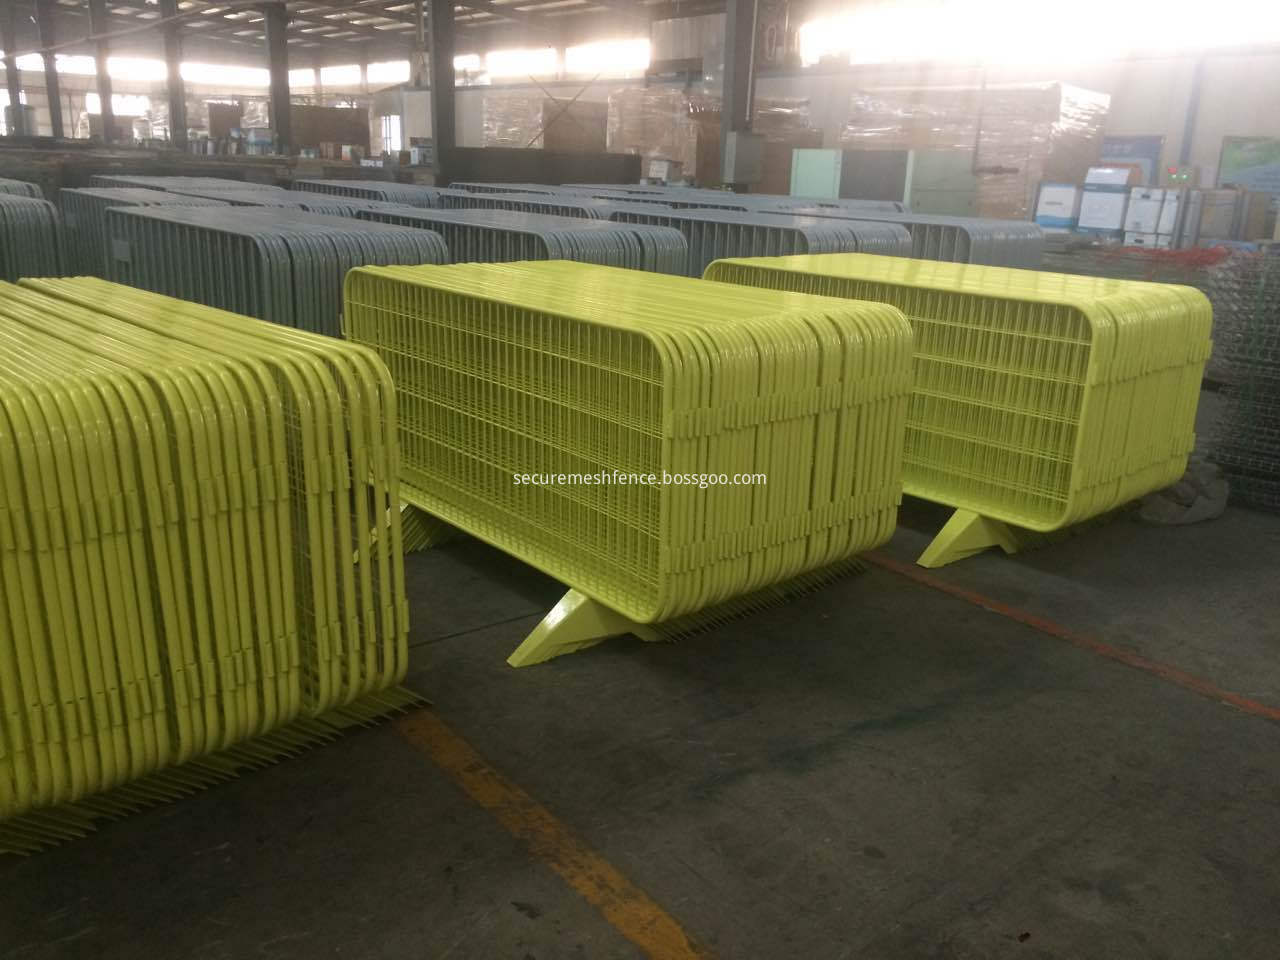 1.2x2.0 mesh temporary fence barriers